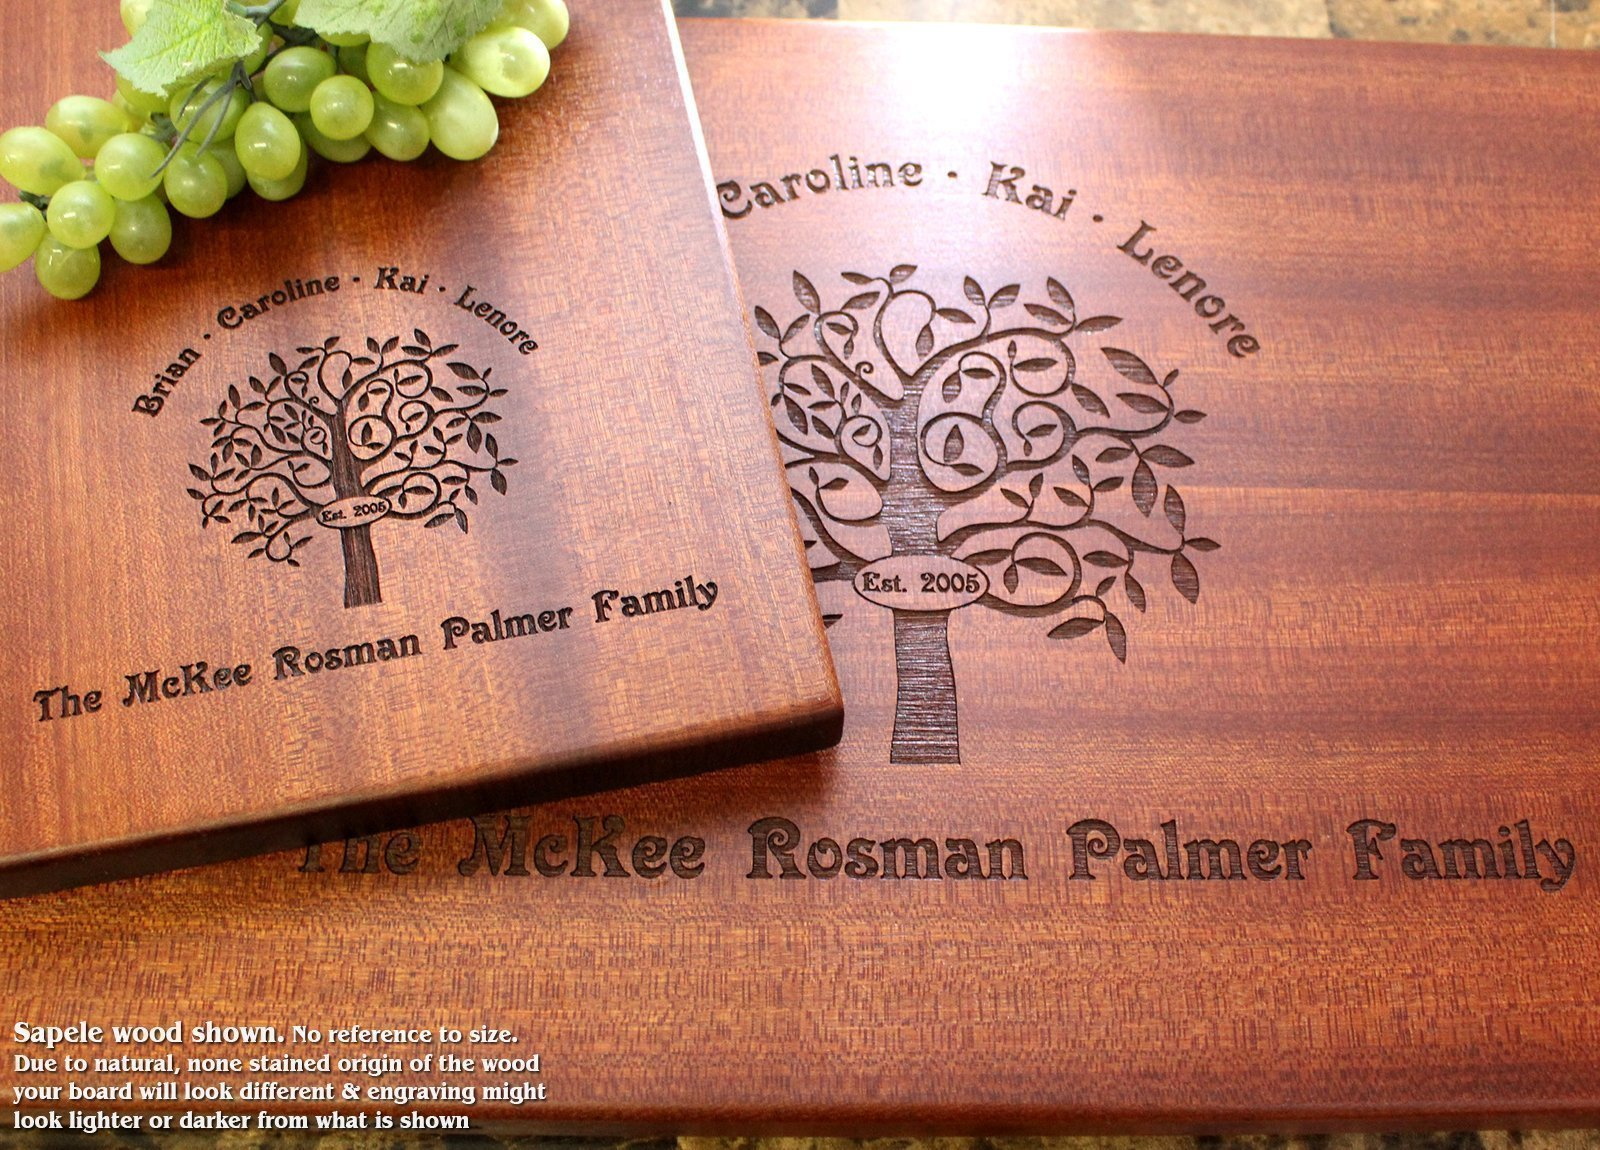 Personalized Cutting Board, Custom Keepsake, Engraved Serving Cheese Plate, Wedding, Anniversary, Engagement, Housewarming, Birthday, Corporate, Closing Gift #402 by Straga Cutting Boards (Image #2)